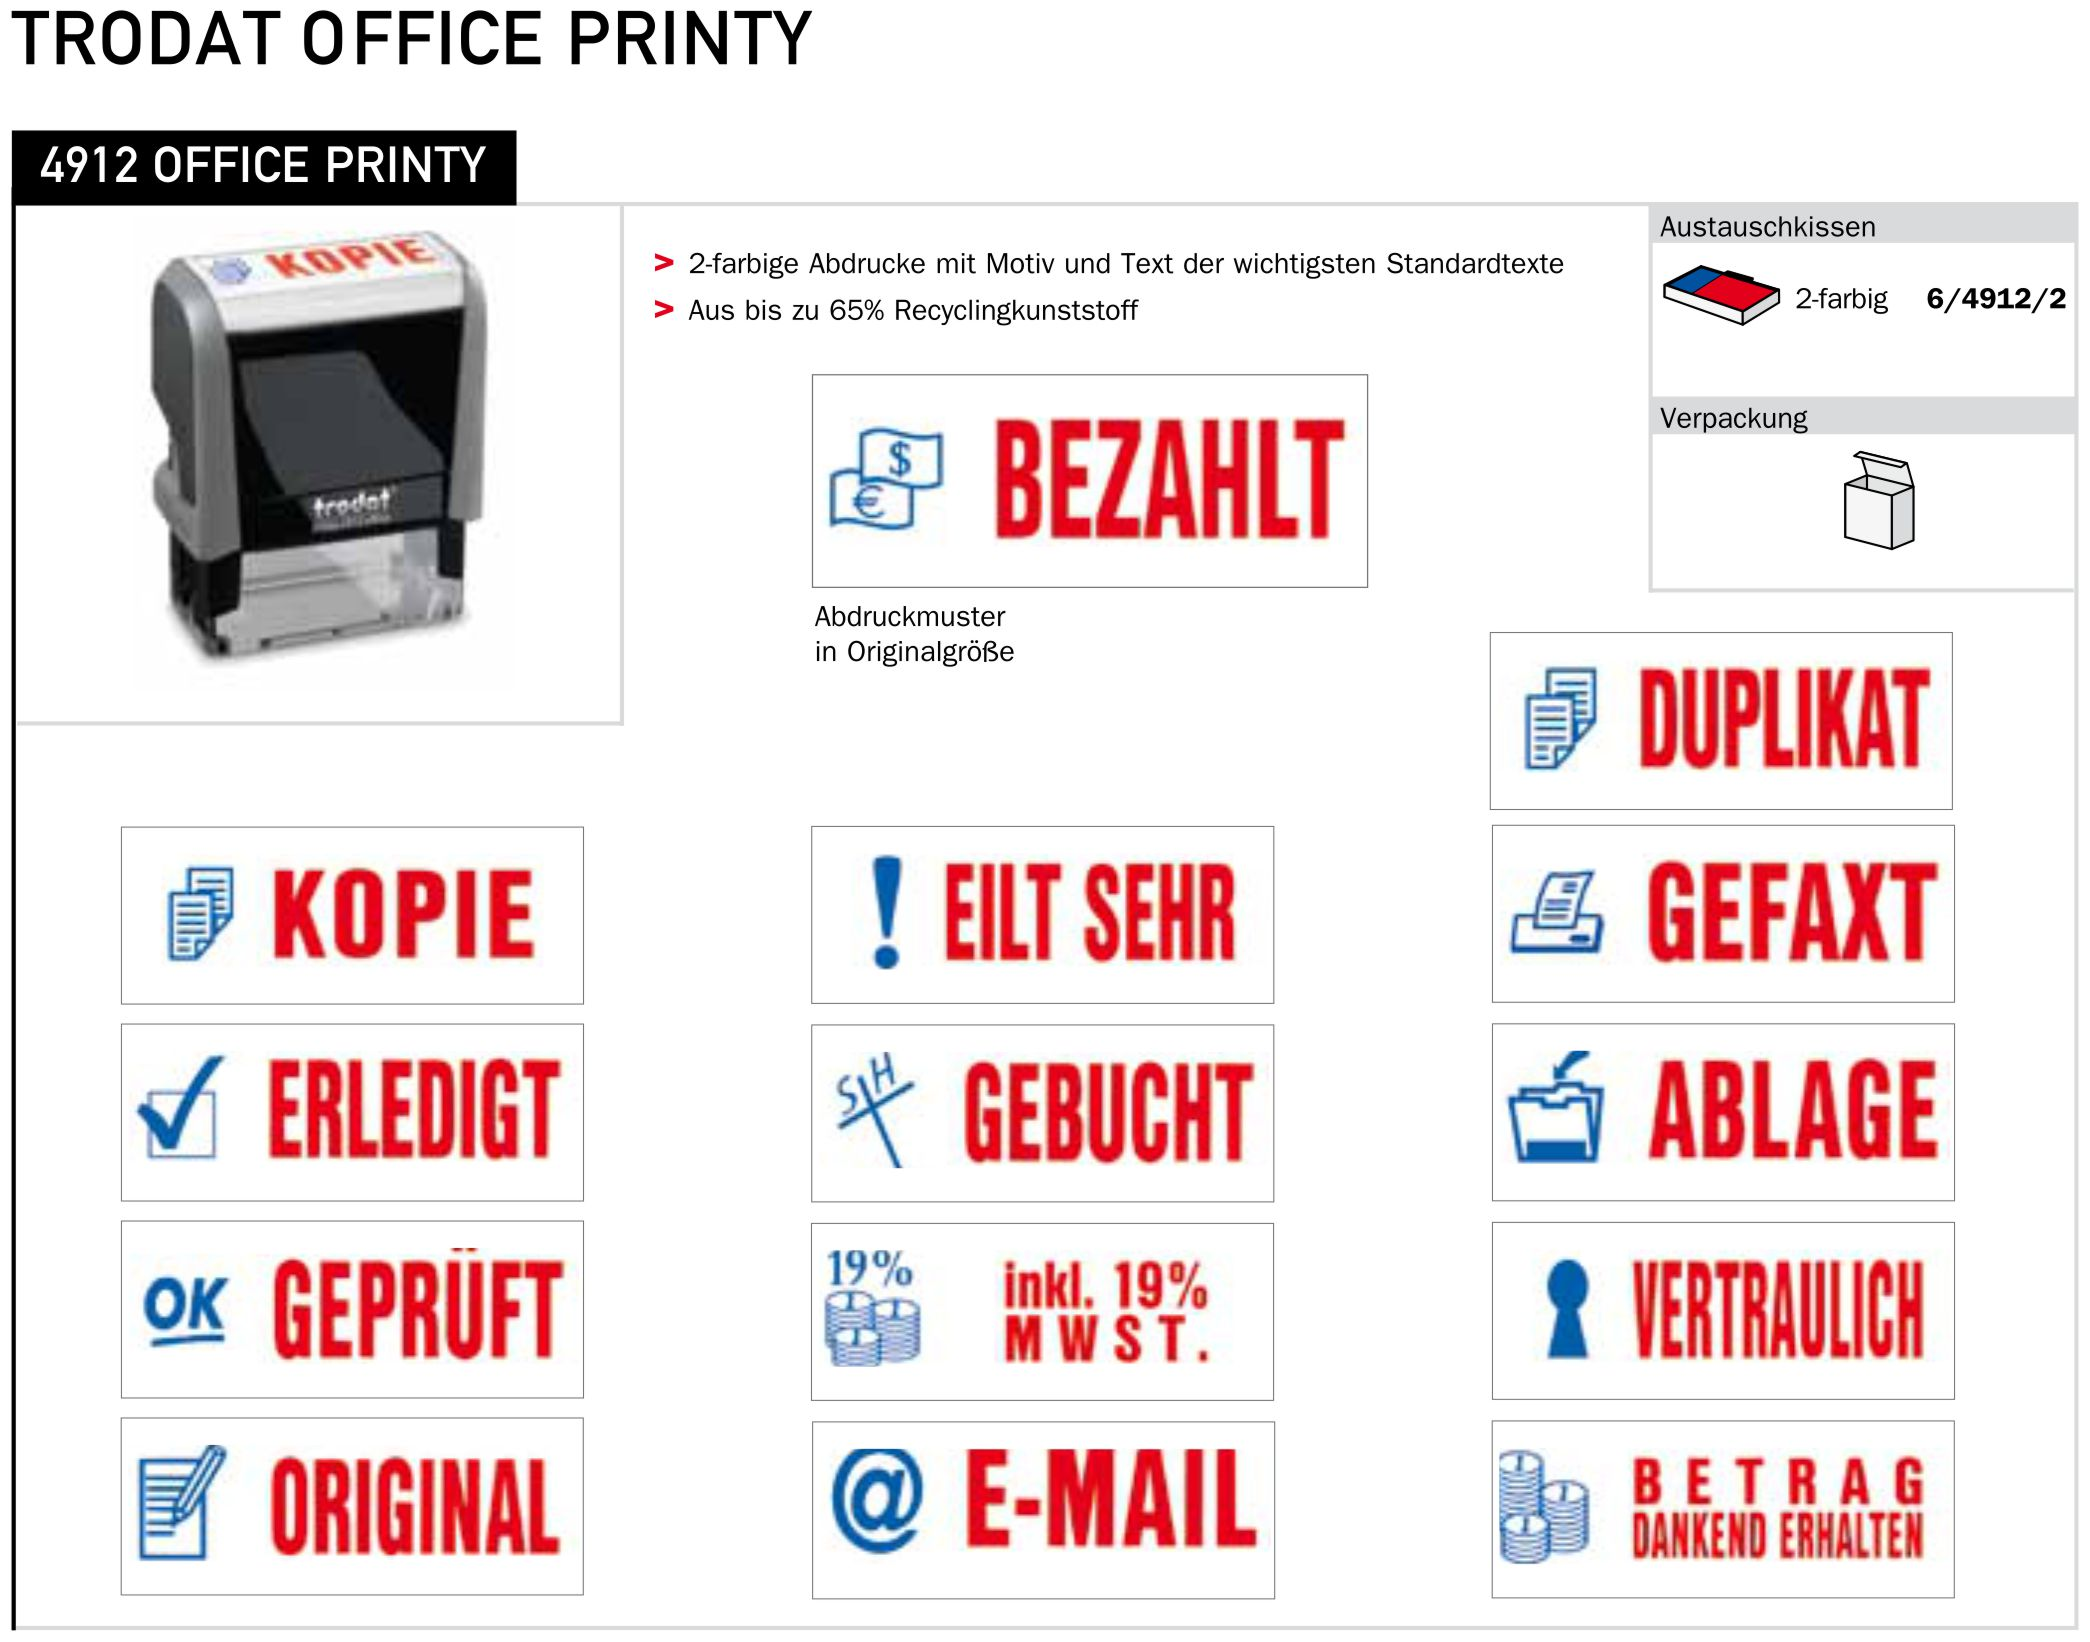 OFFICE PRINTY STEMPELLAYOUT MIT MOTIV UND TEXT